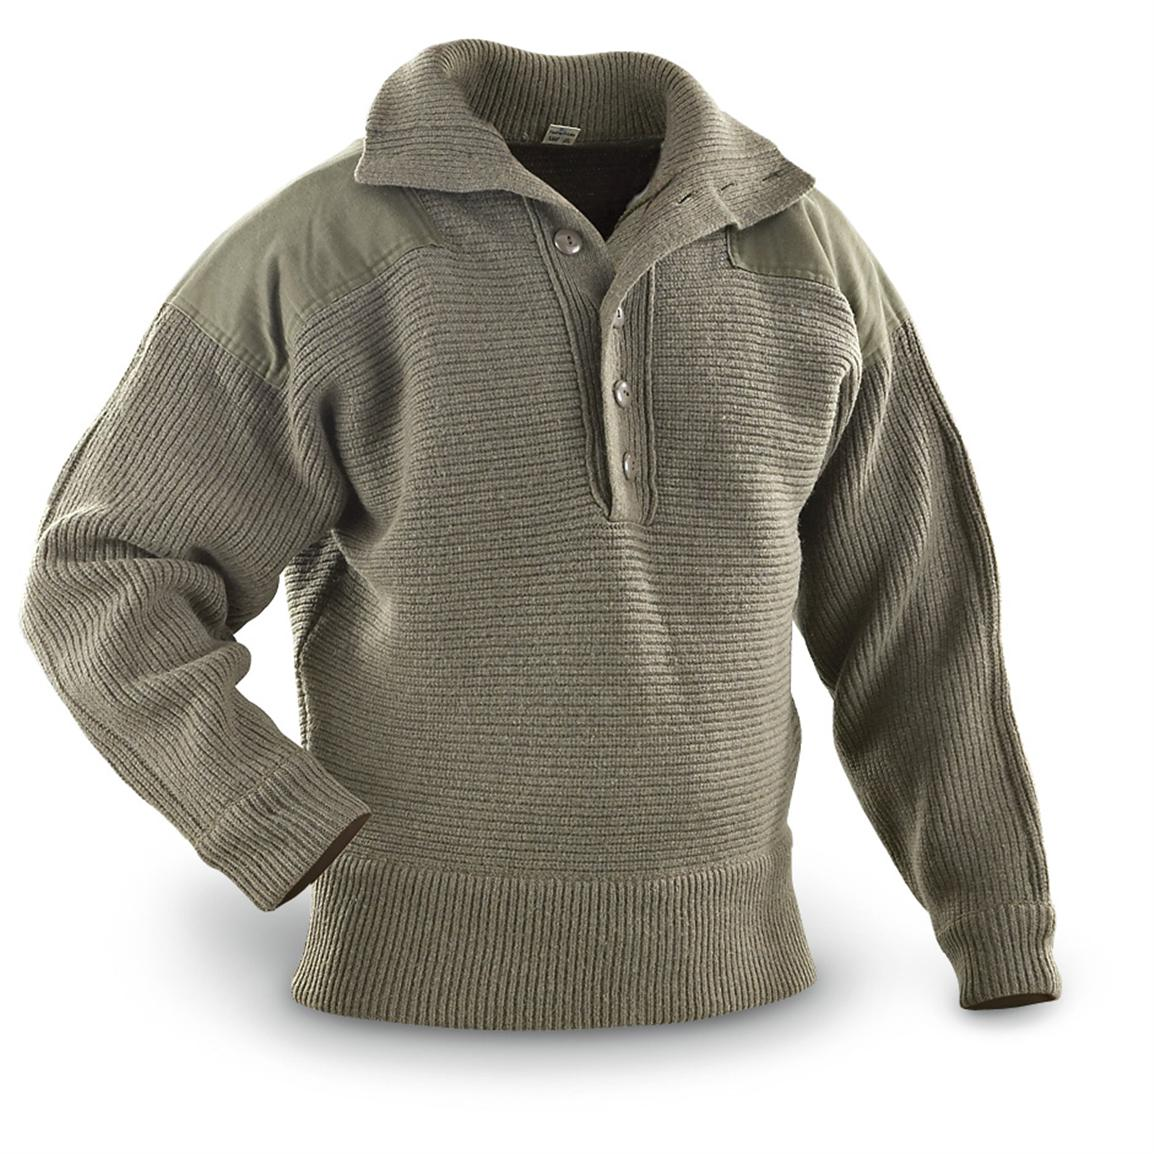 Used Austrian Heavyweight Wool Sweater Olive Drab